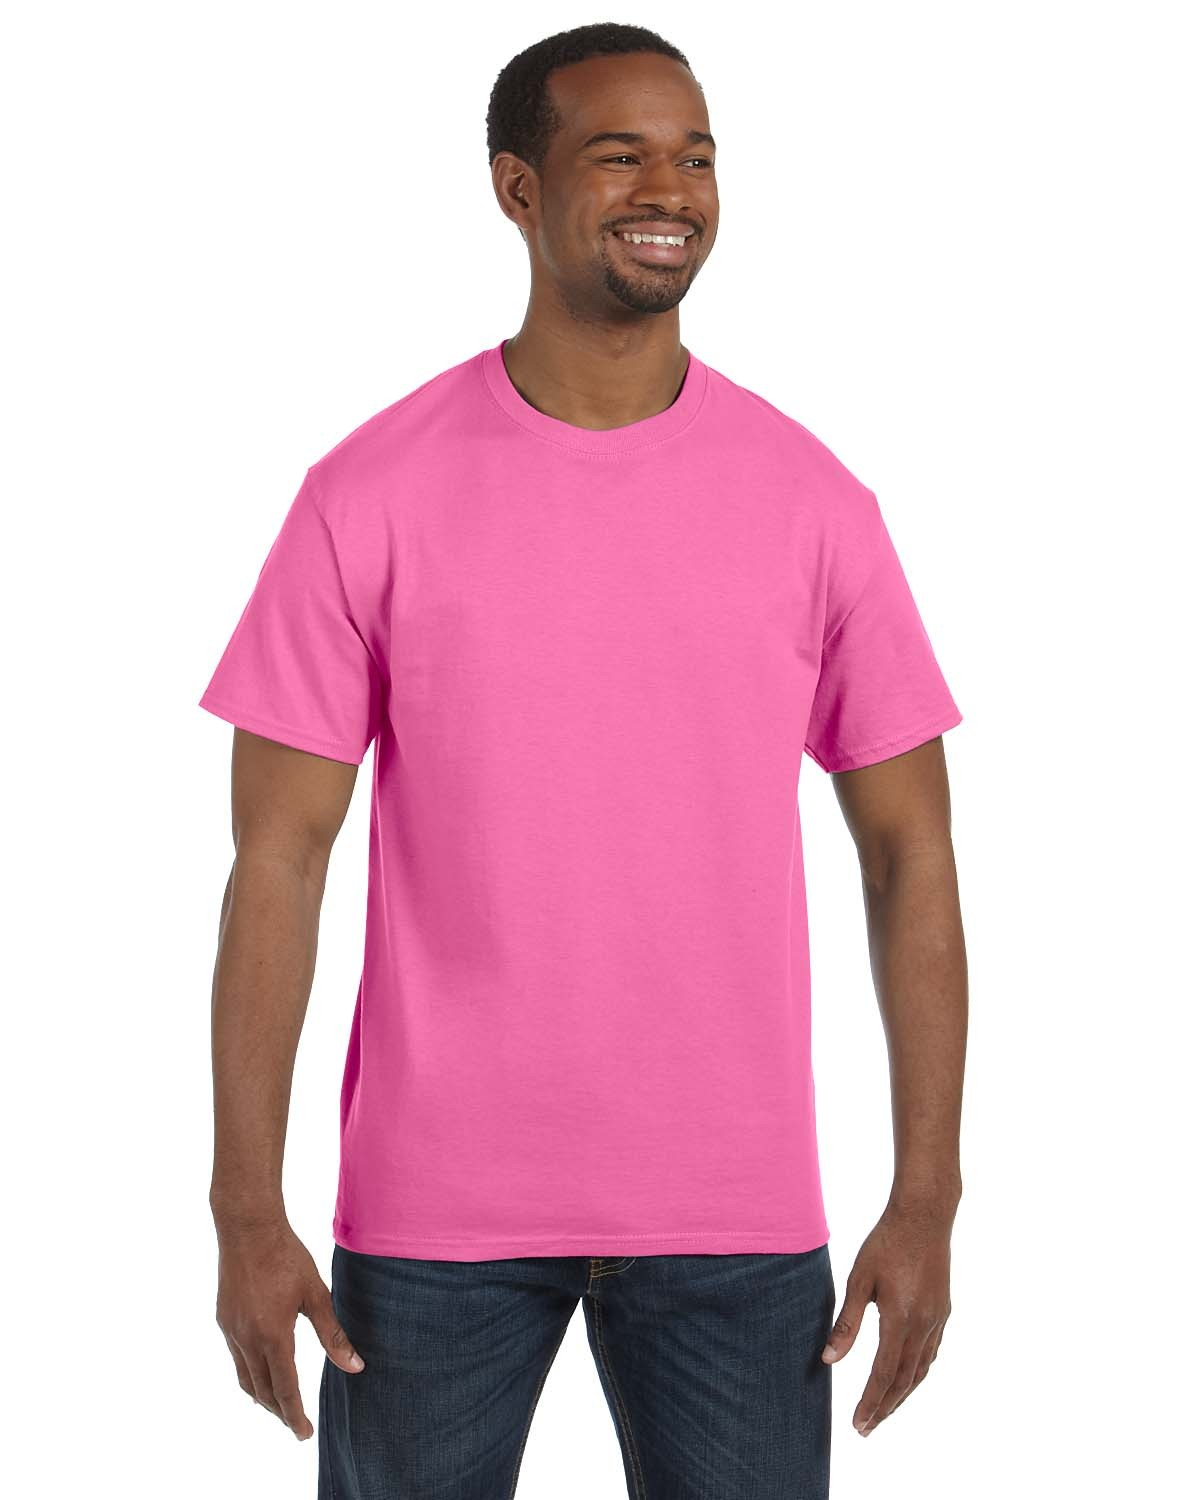 5250T Hanes PINK